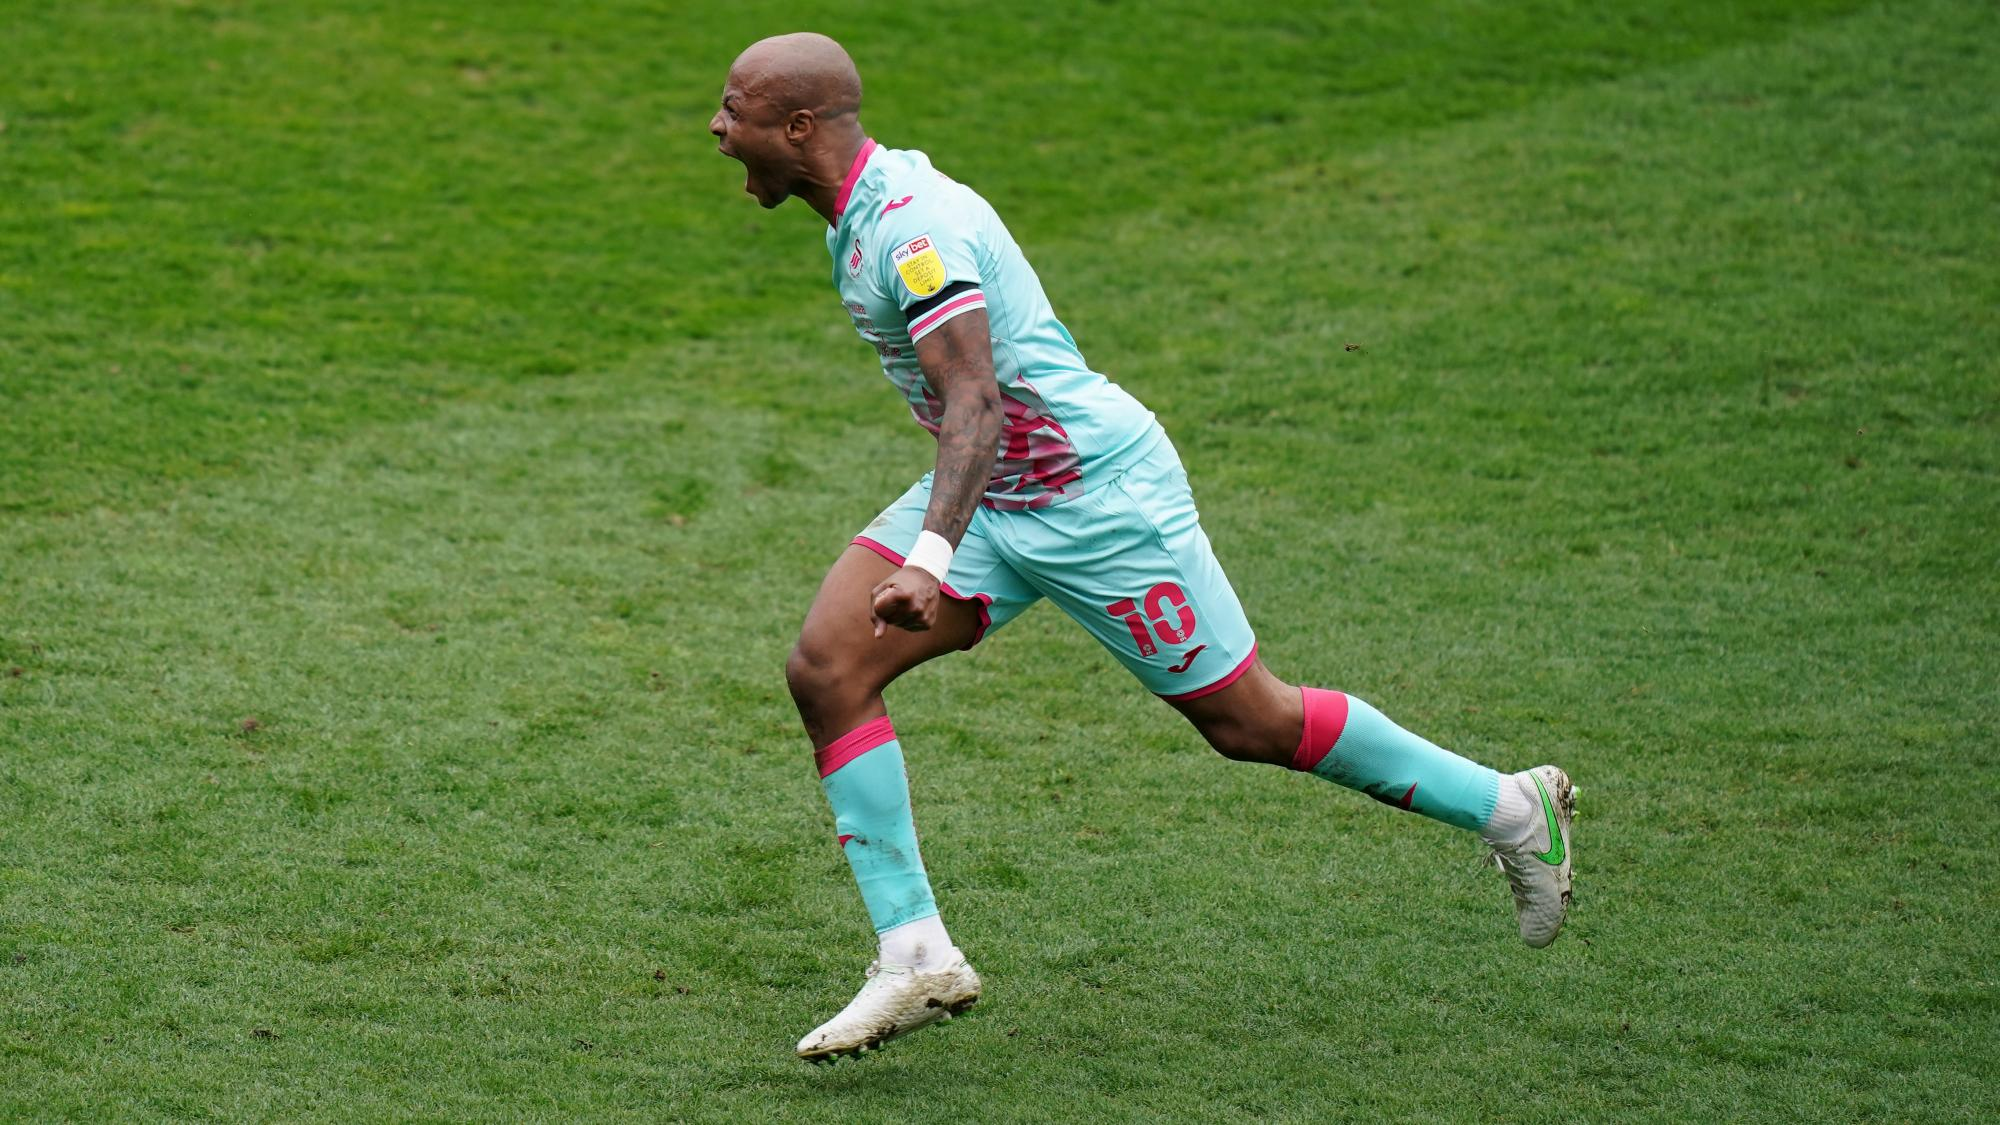 VIDEO: Andre Ayew scores and assists as Swansea City thrash Millwall